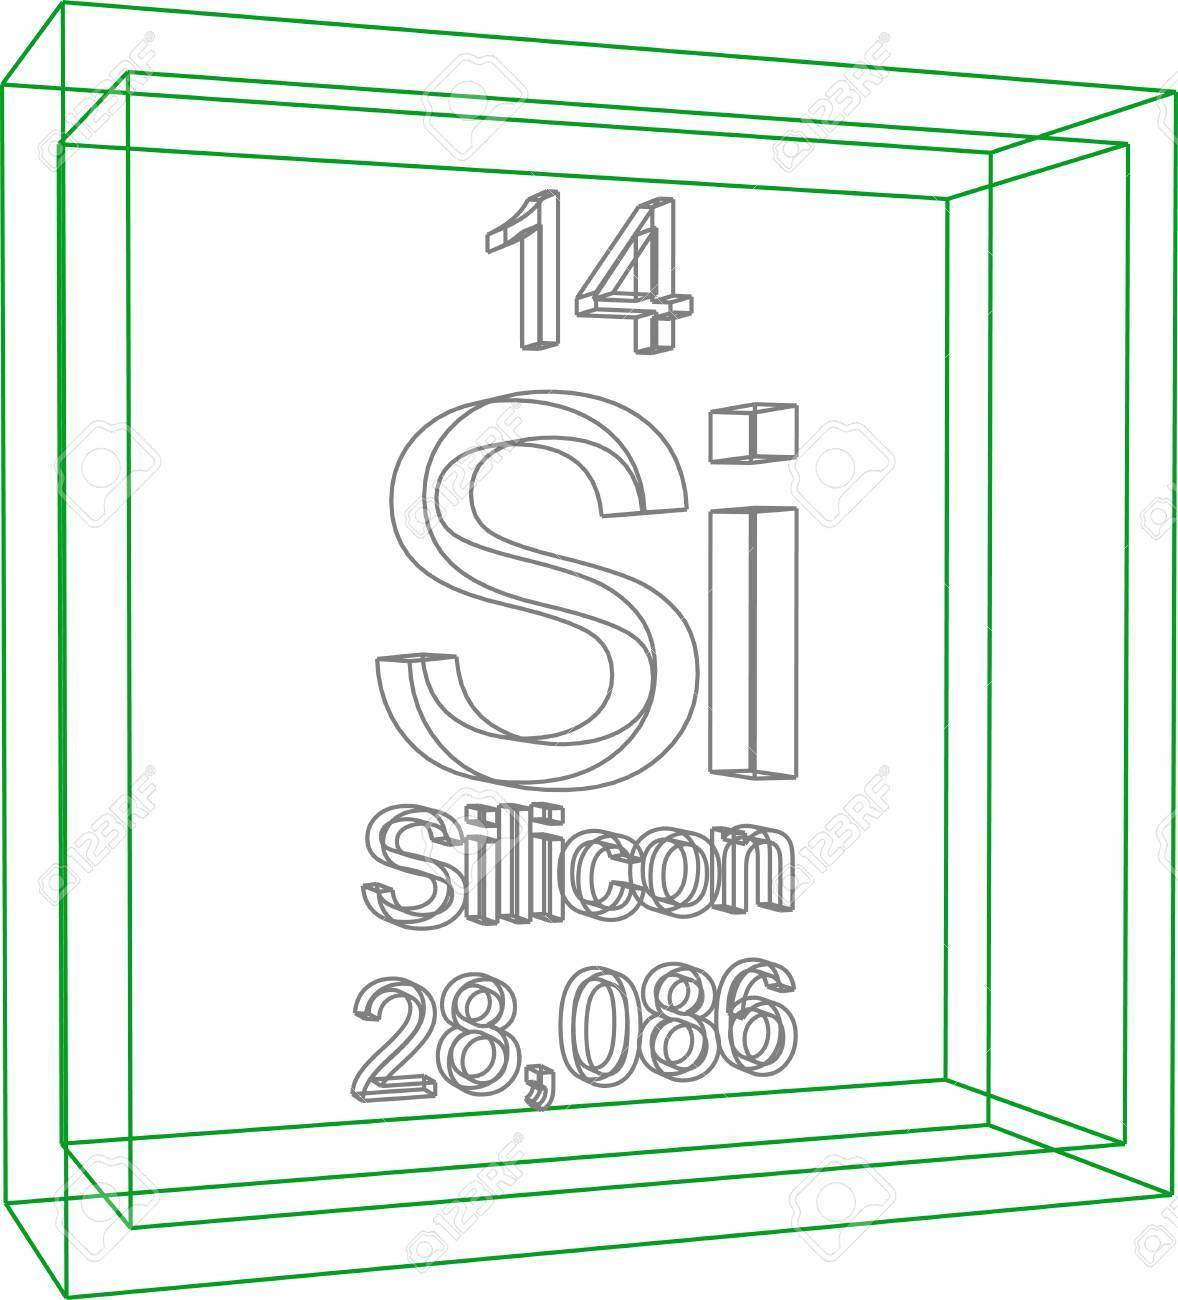 Periodic Table Of Elements - Silicon Royalty Free Cliparts, Vectors ...